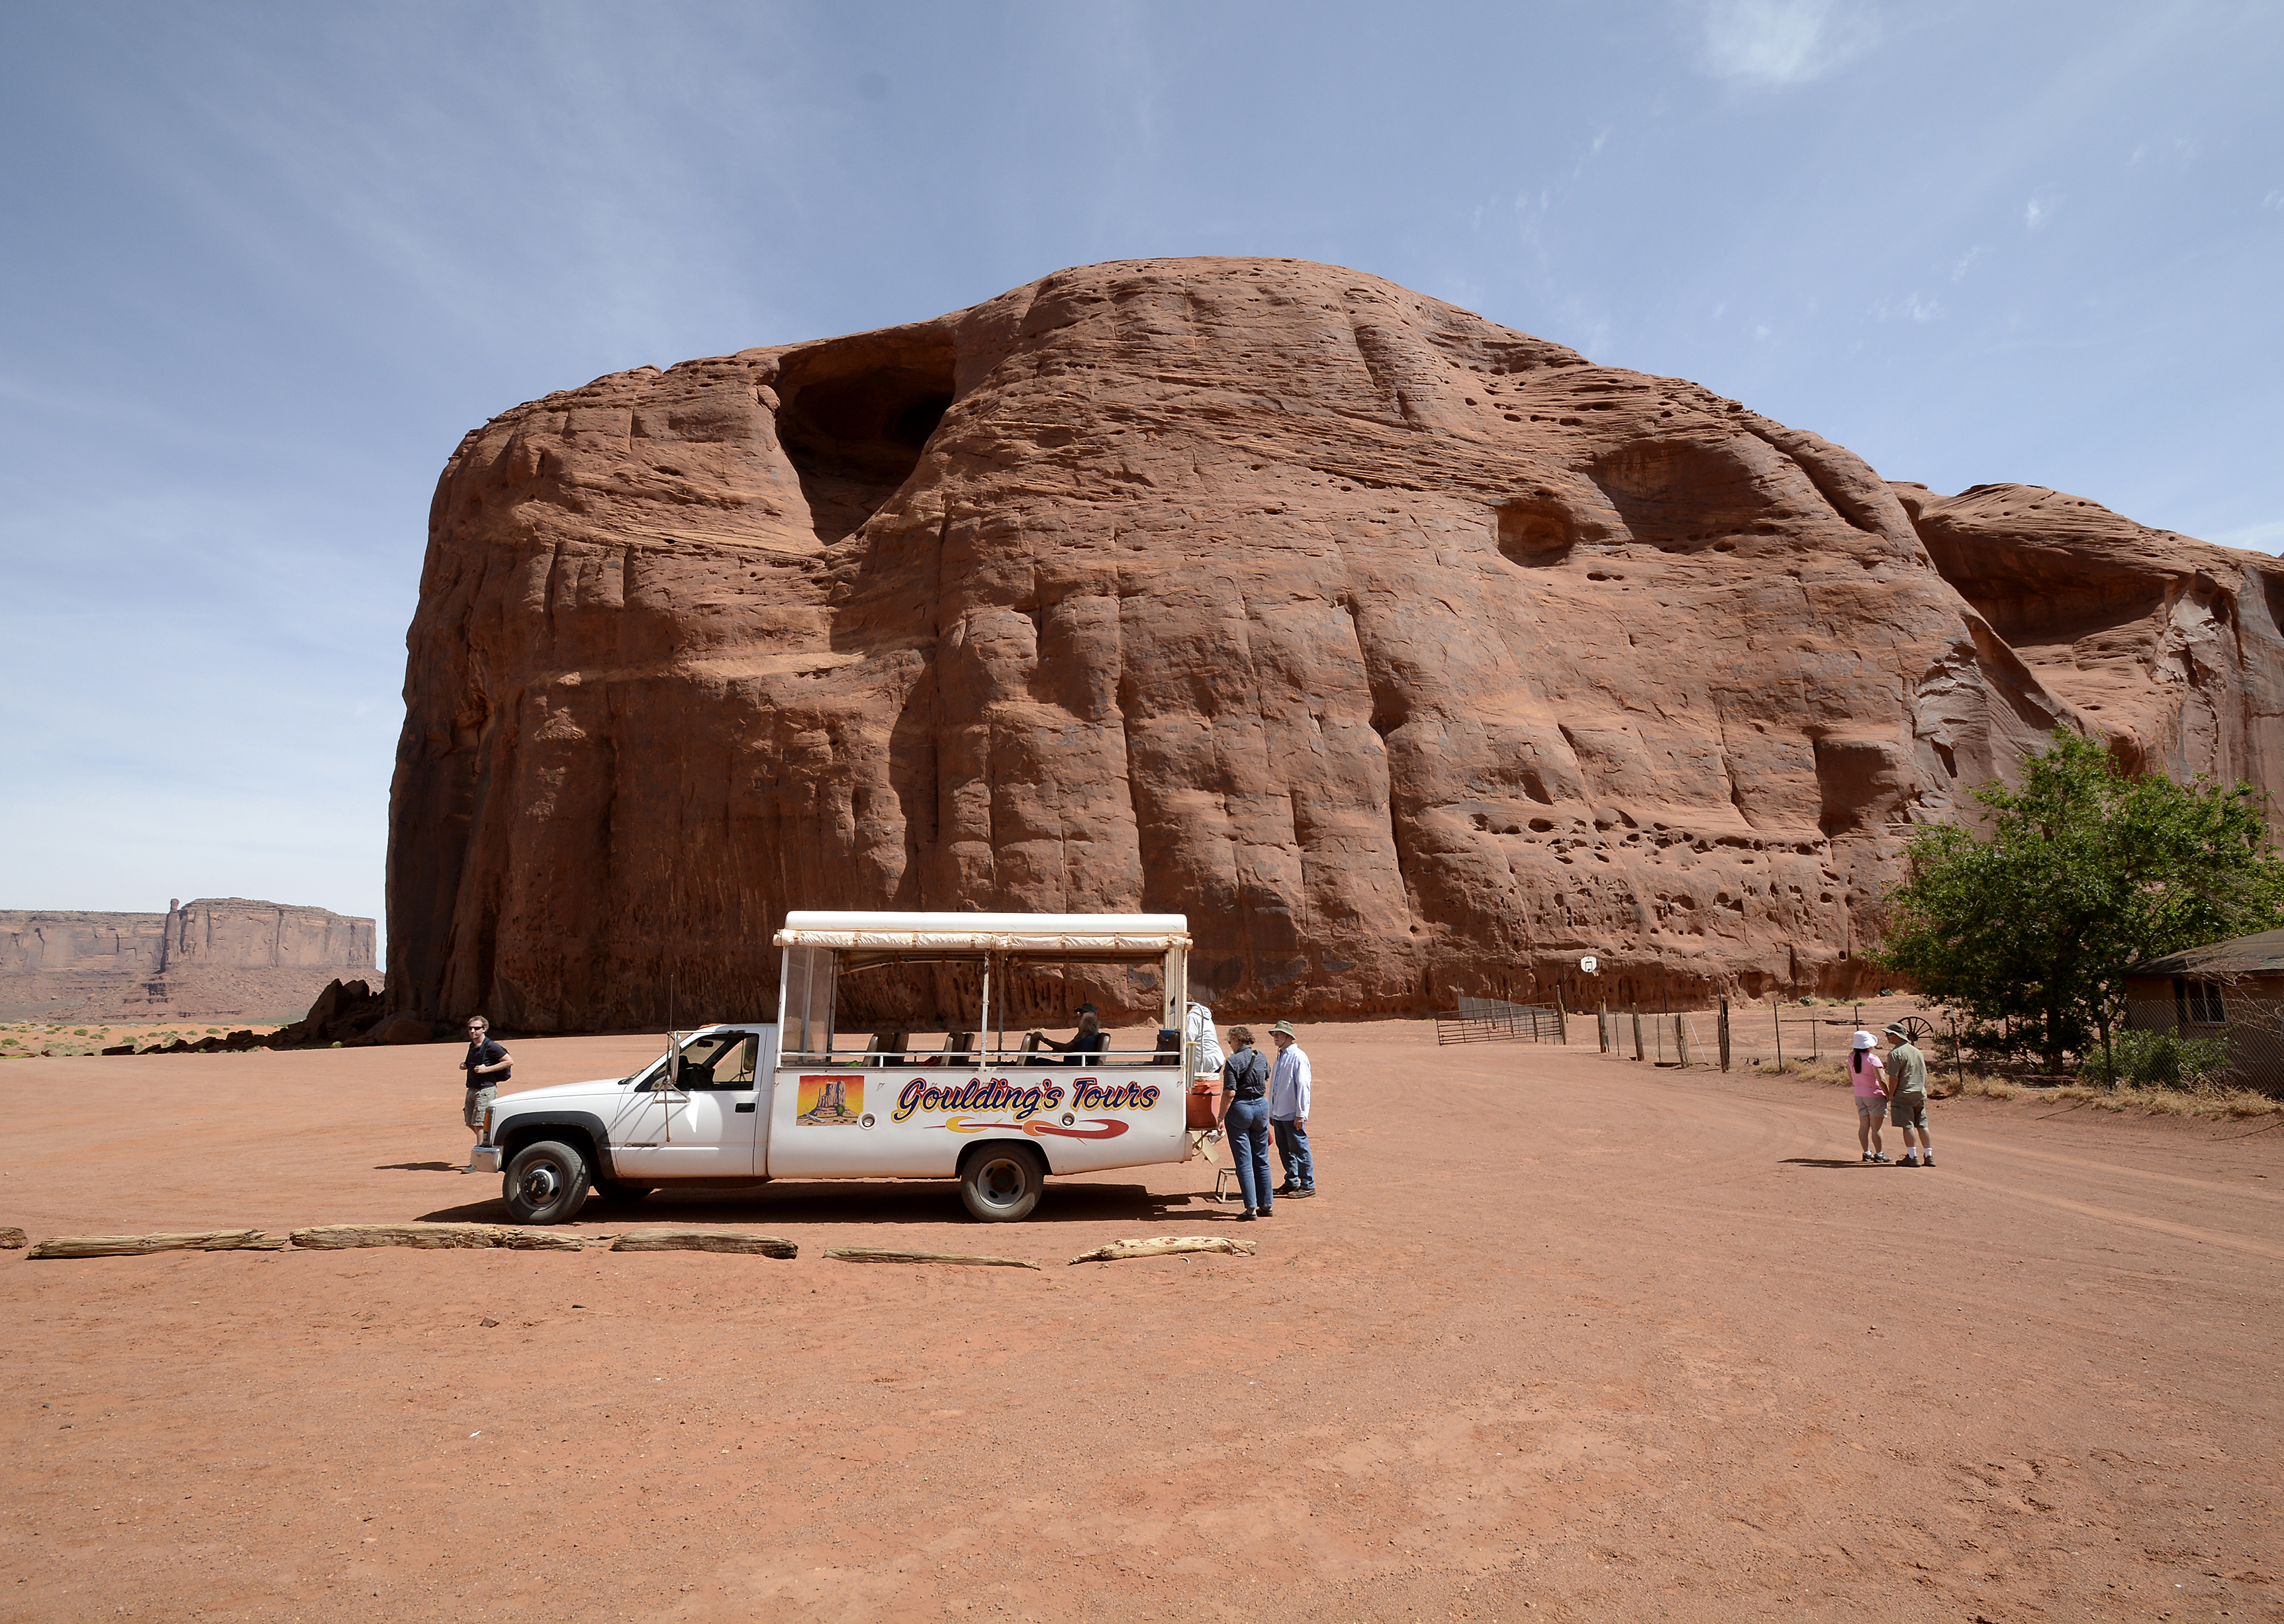 Tourists in specially designed vehicles enjoy the view on a tour of Monument Valley Navajo Tribal Park in southeastern Utah, May 16, 2014.